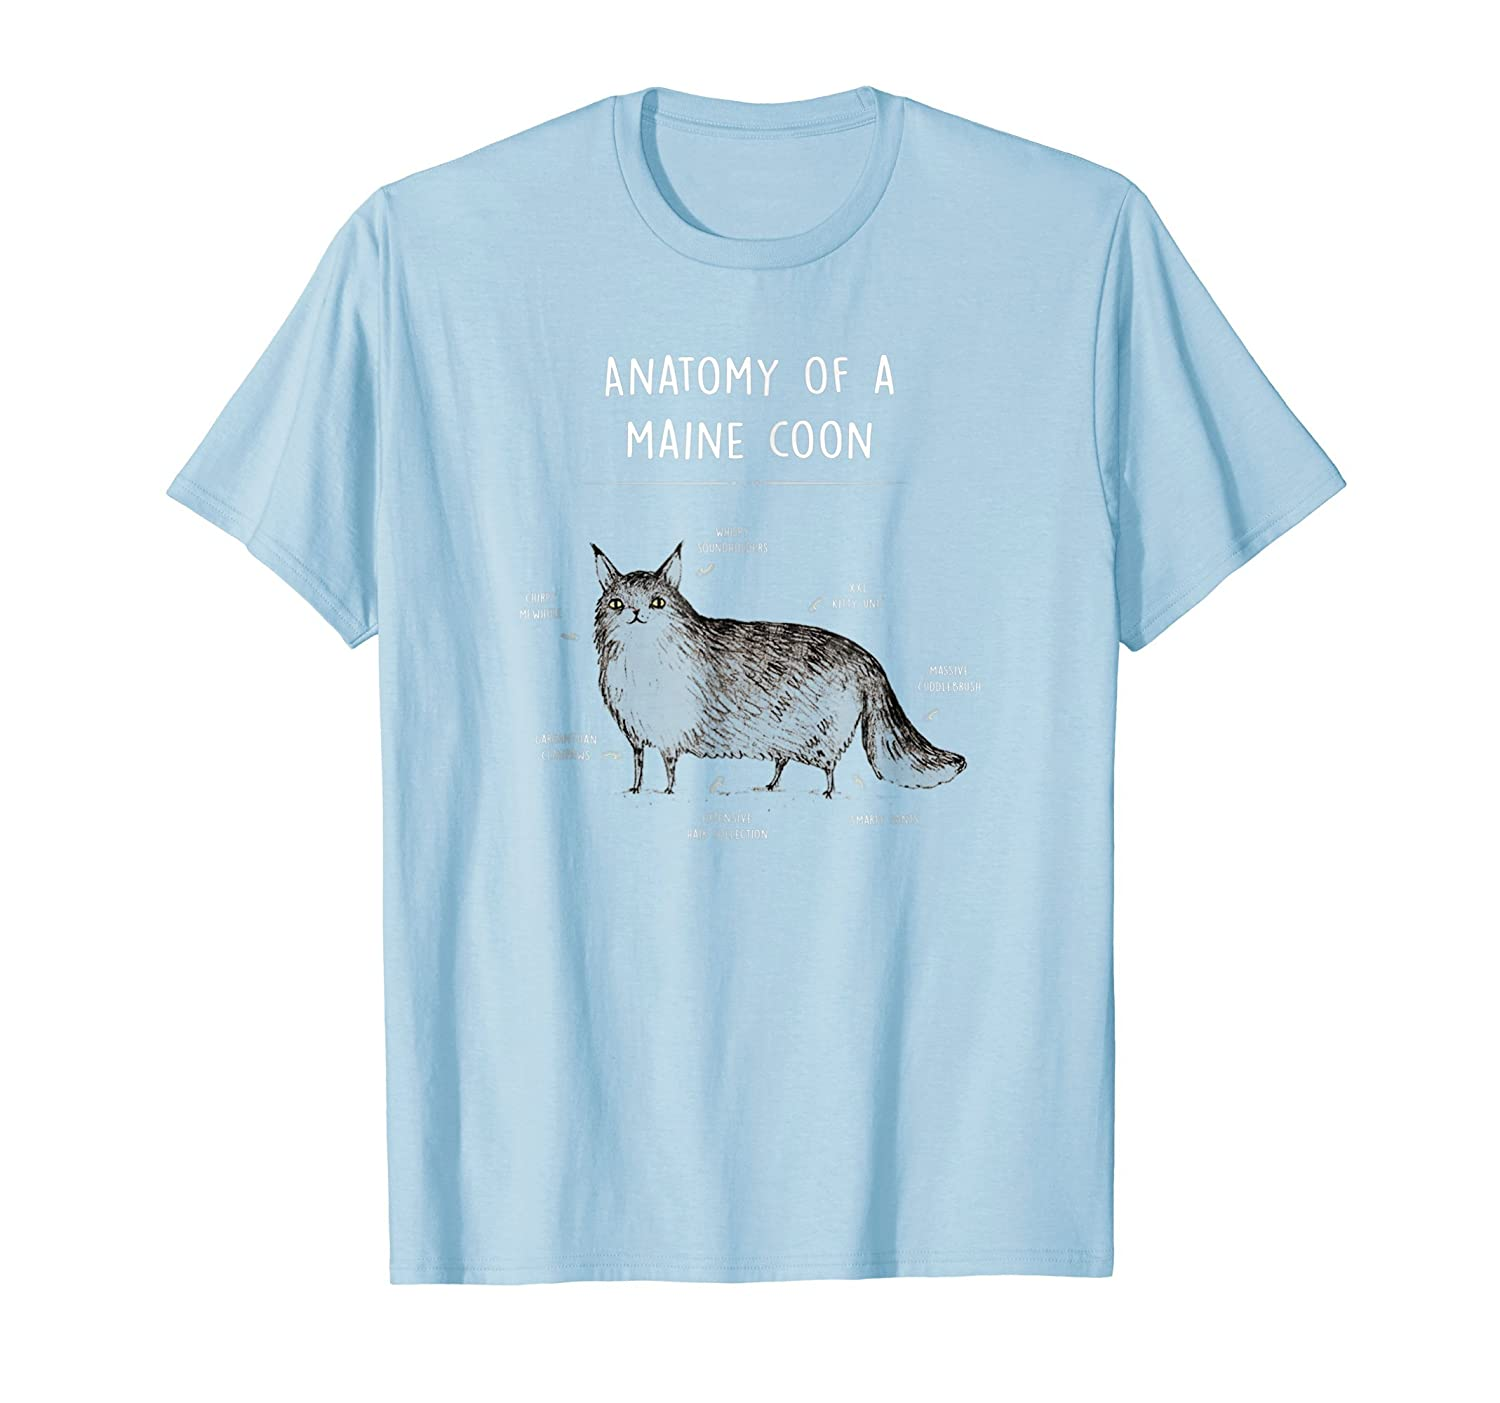 Amazon Anatomy Of A Maine Coon Shirt Funny Cat Humor Gift Clothing